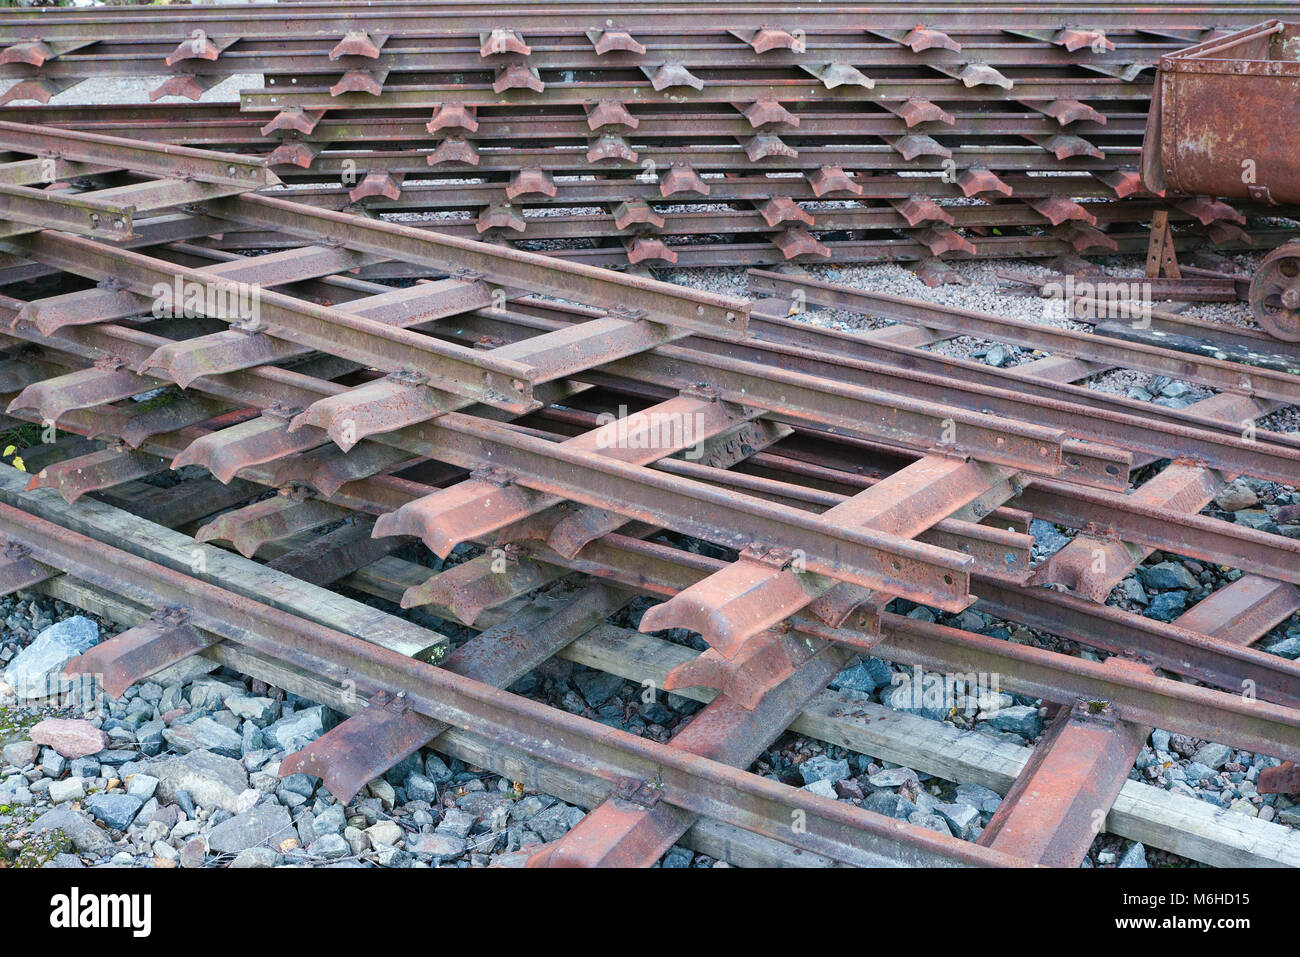 Piles of old mining rail tracks at Konnerud Mining Museum in Norway - Stock Image